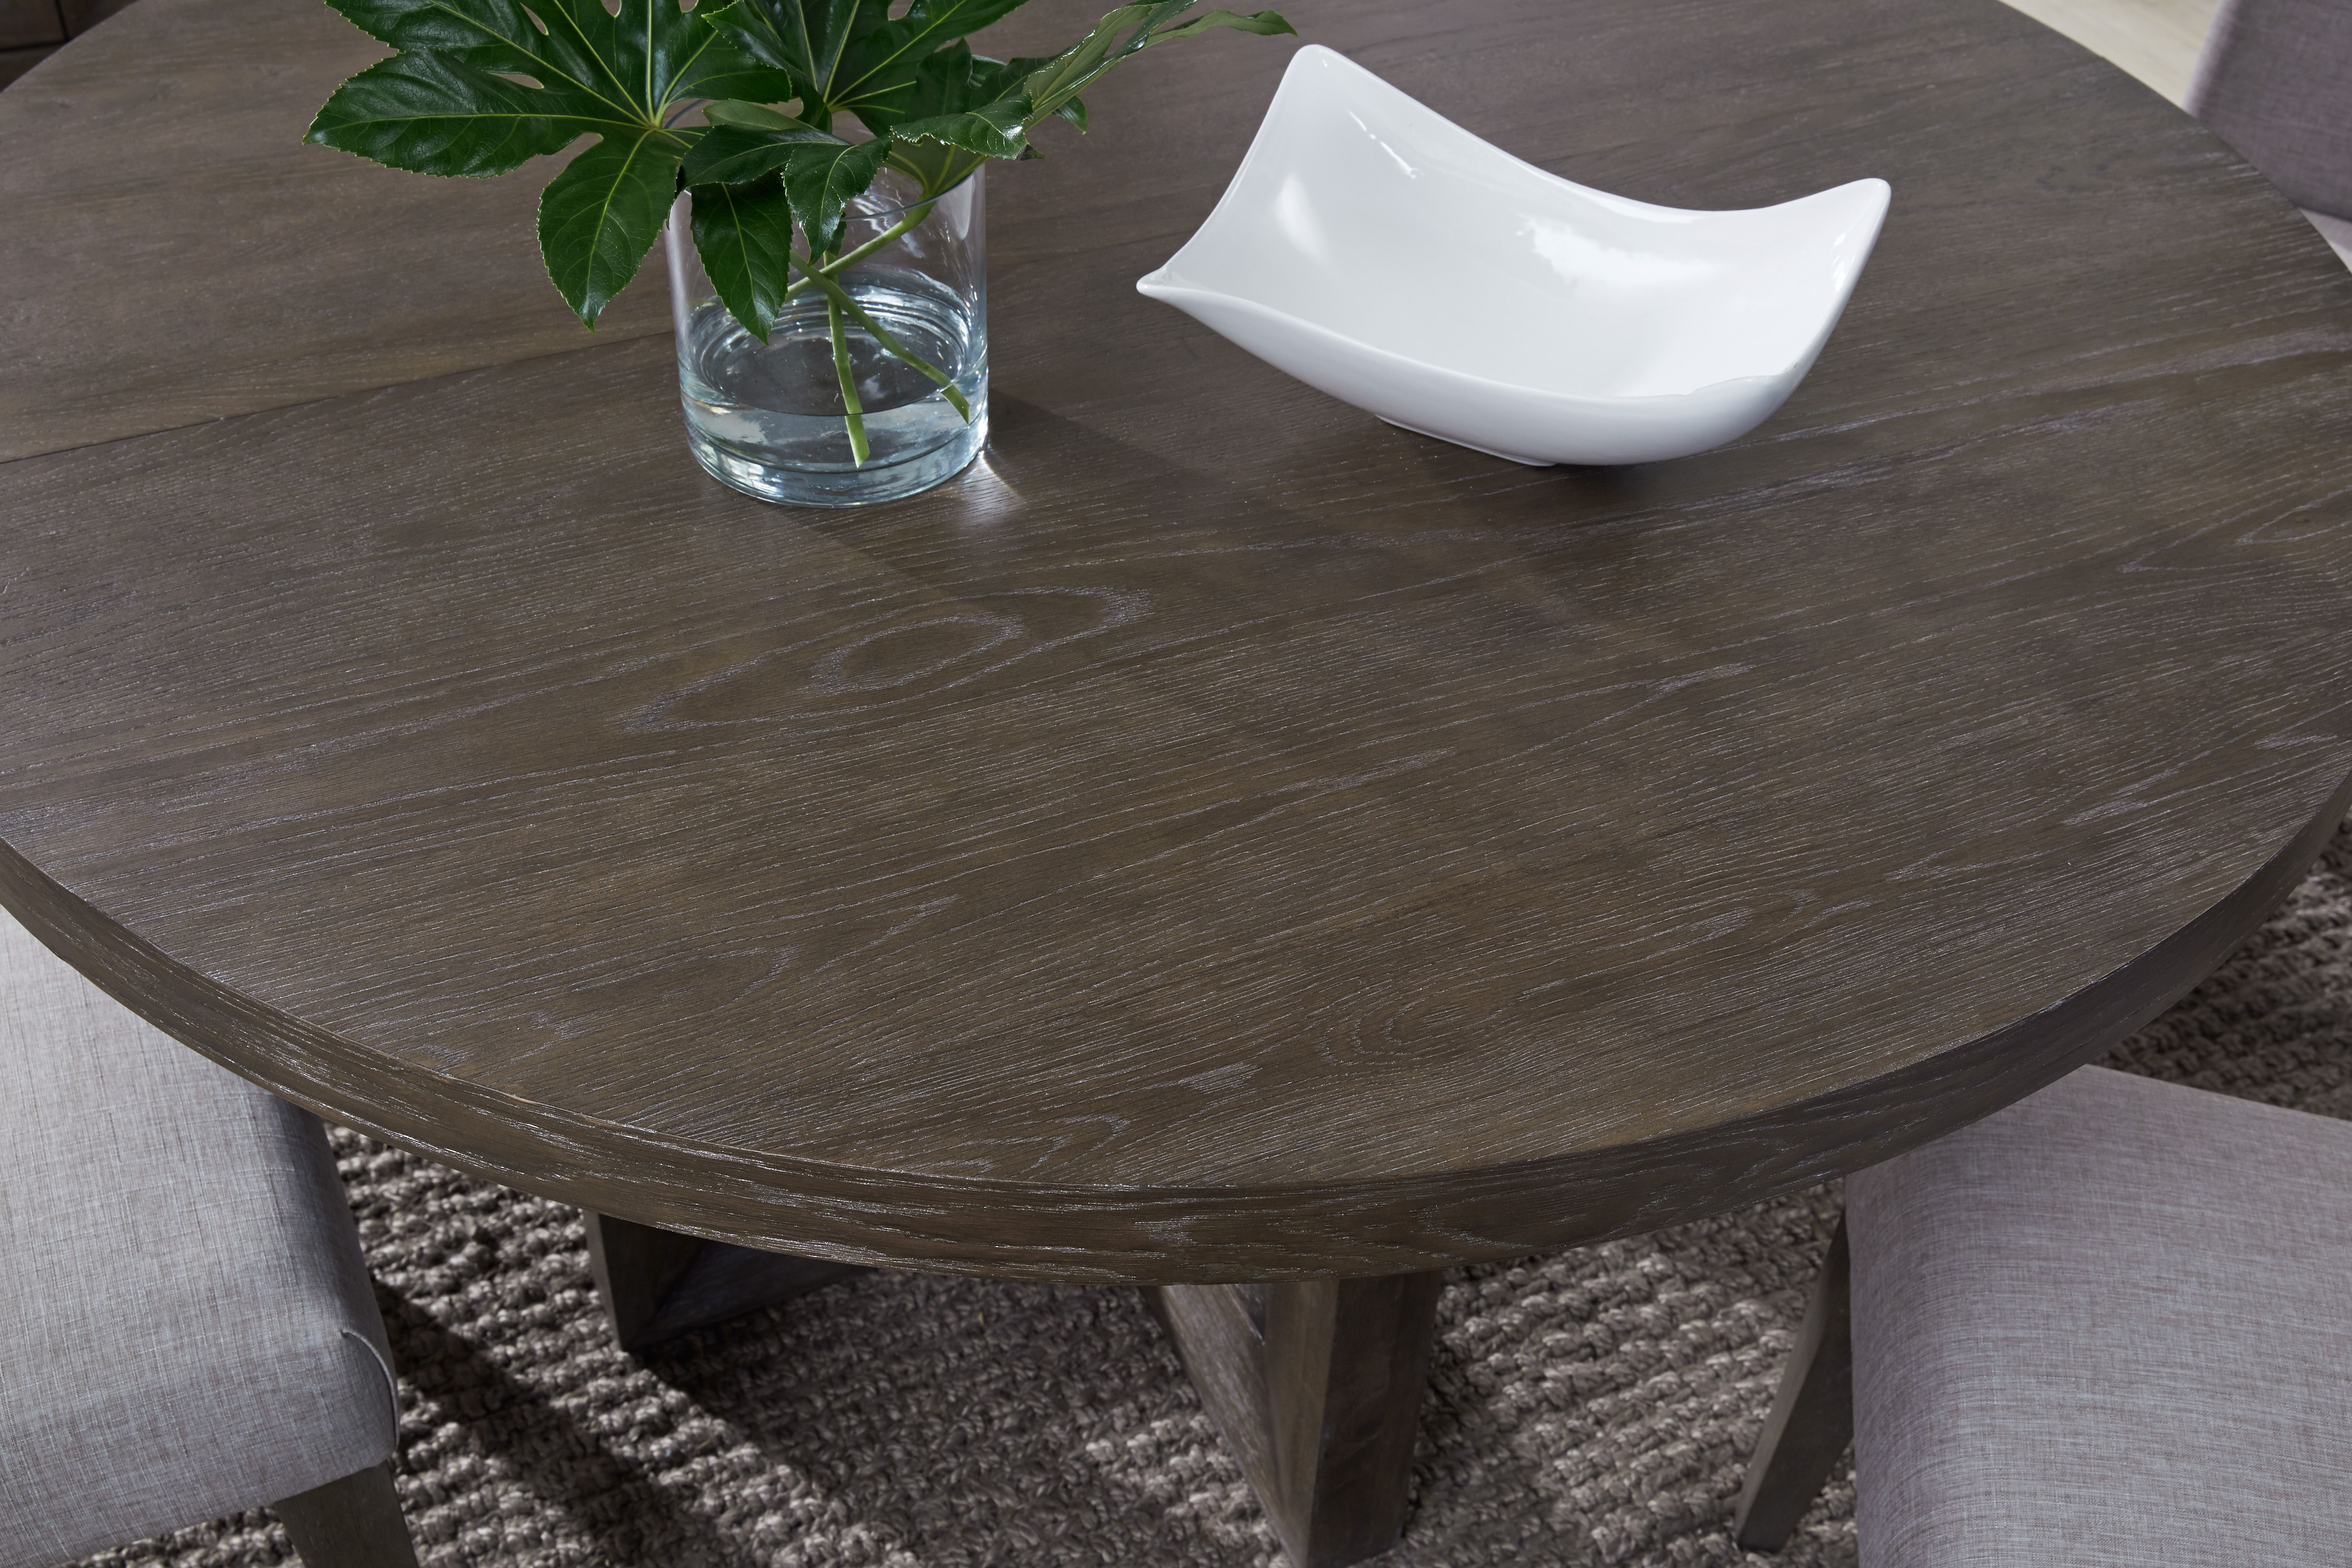 A Little Shimmer The Facets Collection Table Top Legacy Classic Furniture Facets Legacyclassic Din In 2020 Legacy Classic Furniture Dining Table Faceted Design